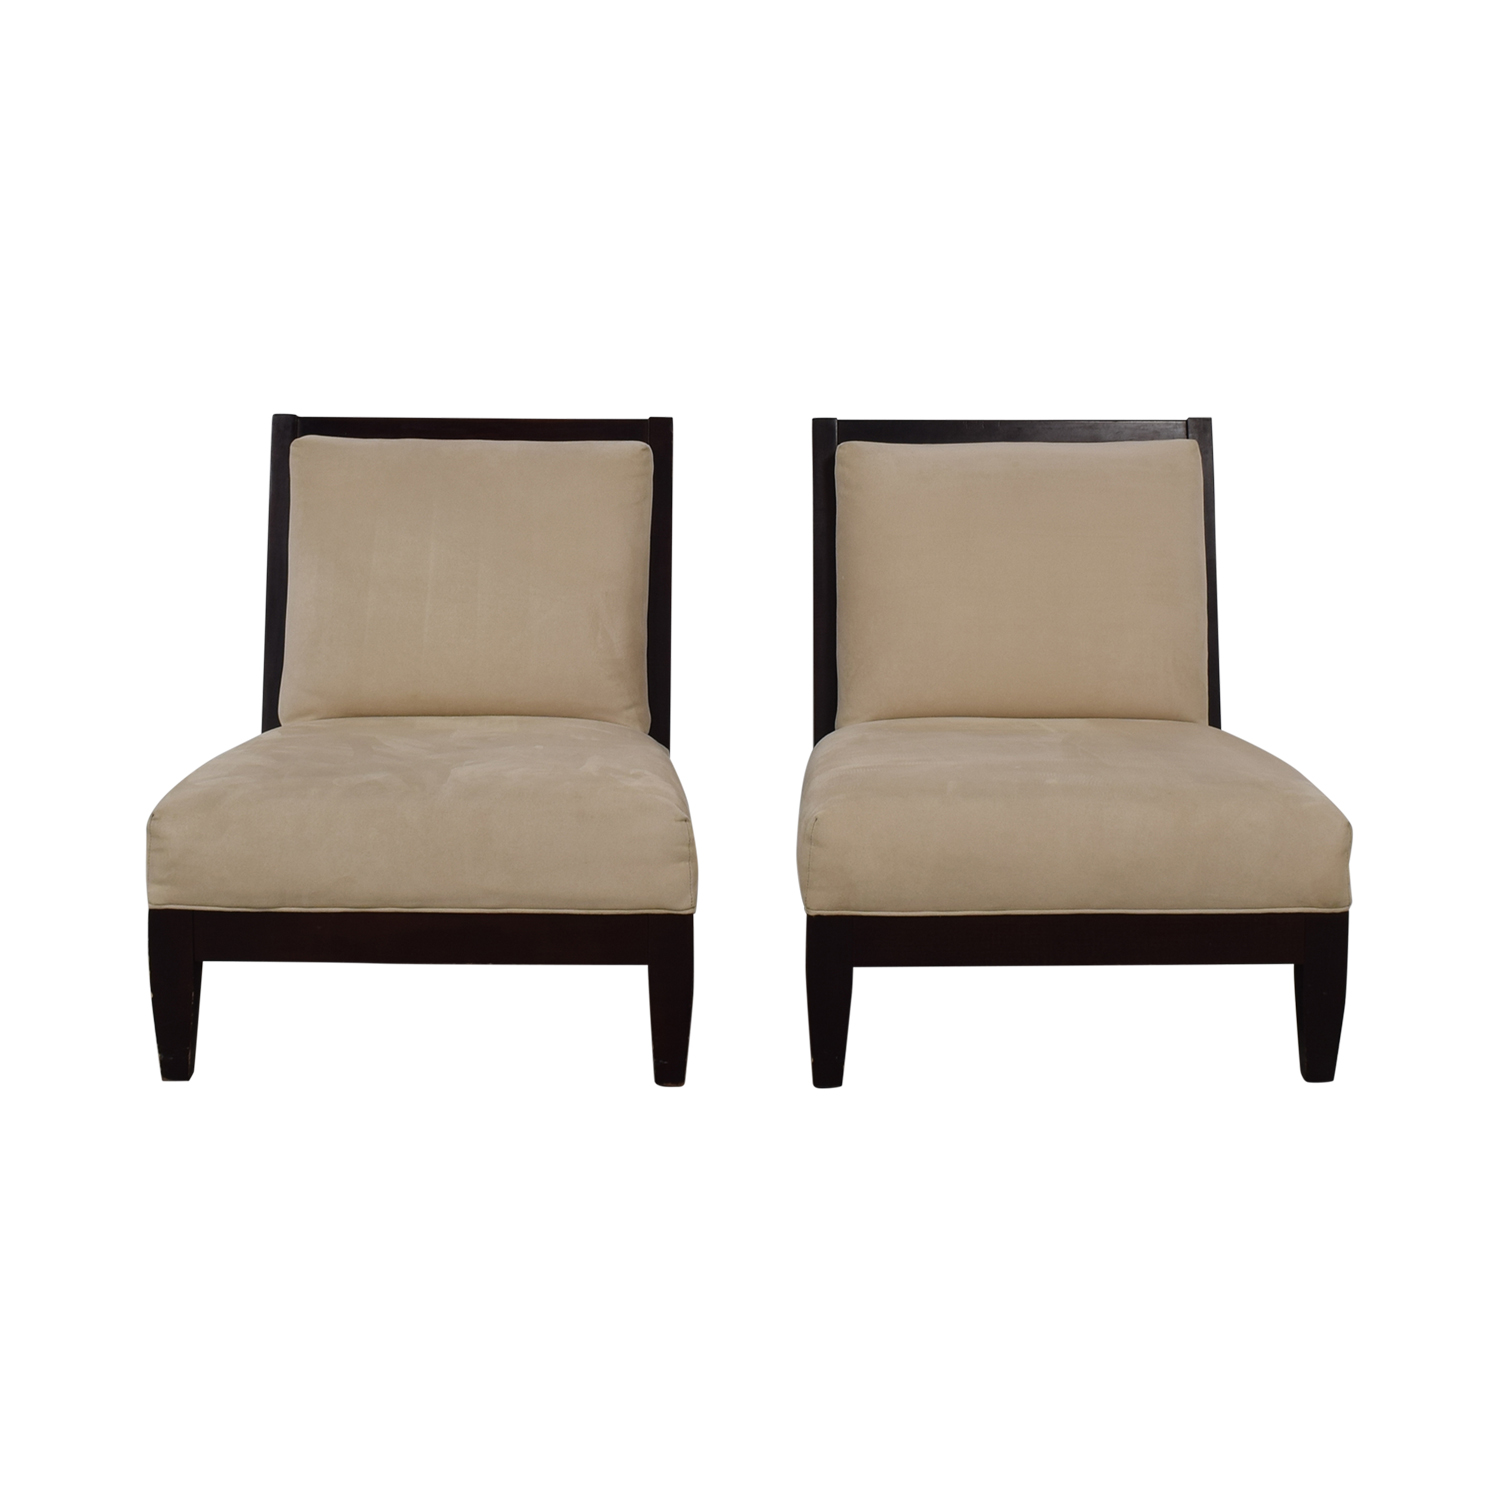 Room & Board Room & Board Beige and Black Accent Chairs for sale